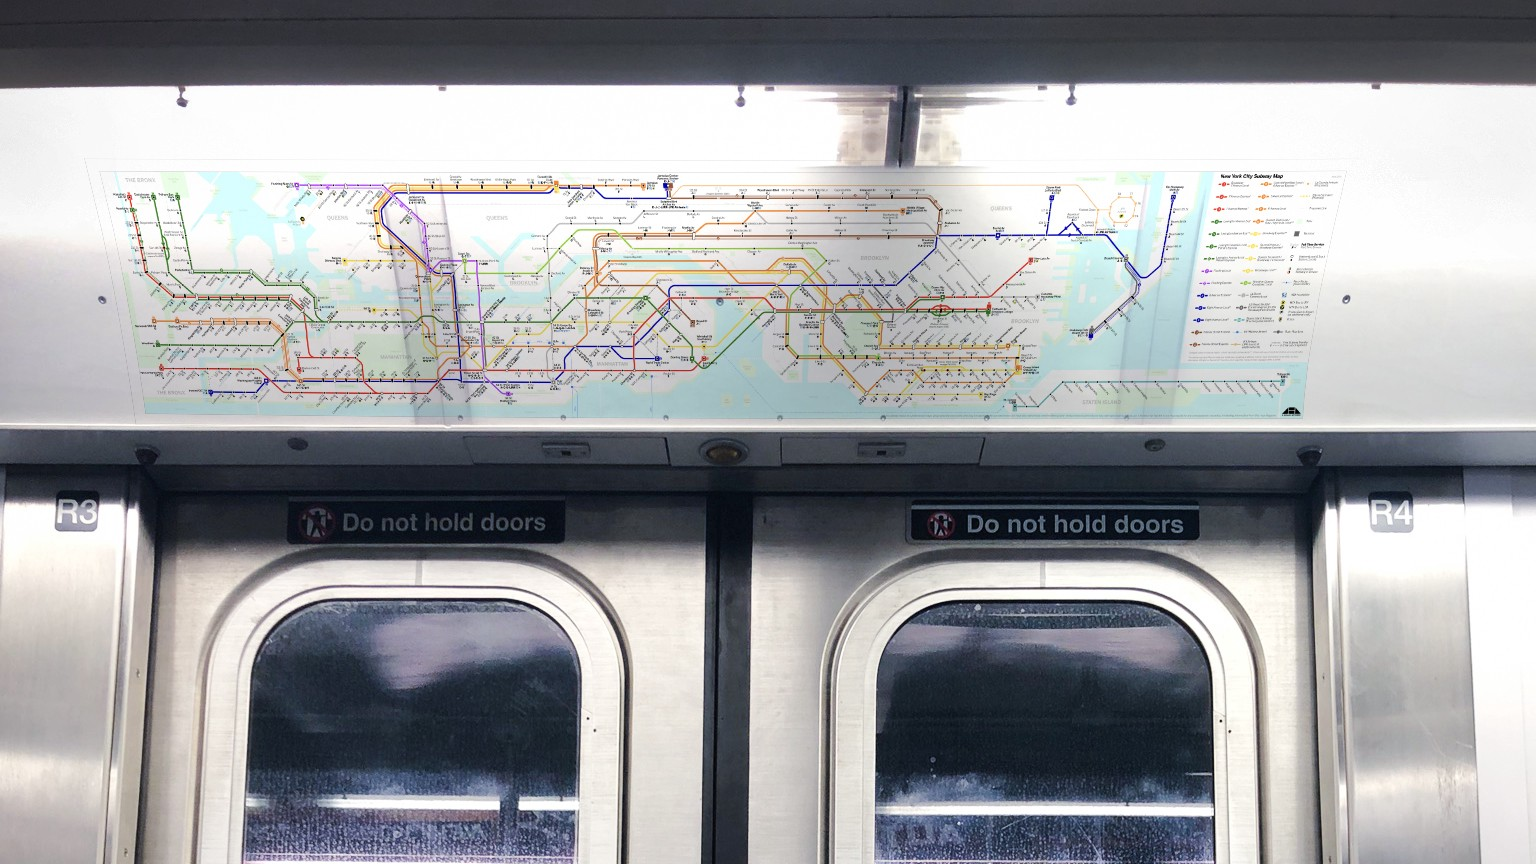 Train Subway Map New York.Rethinking The New York City Subway Map Jun Seong Ahn Medium